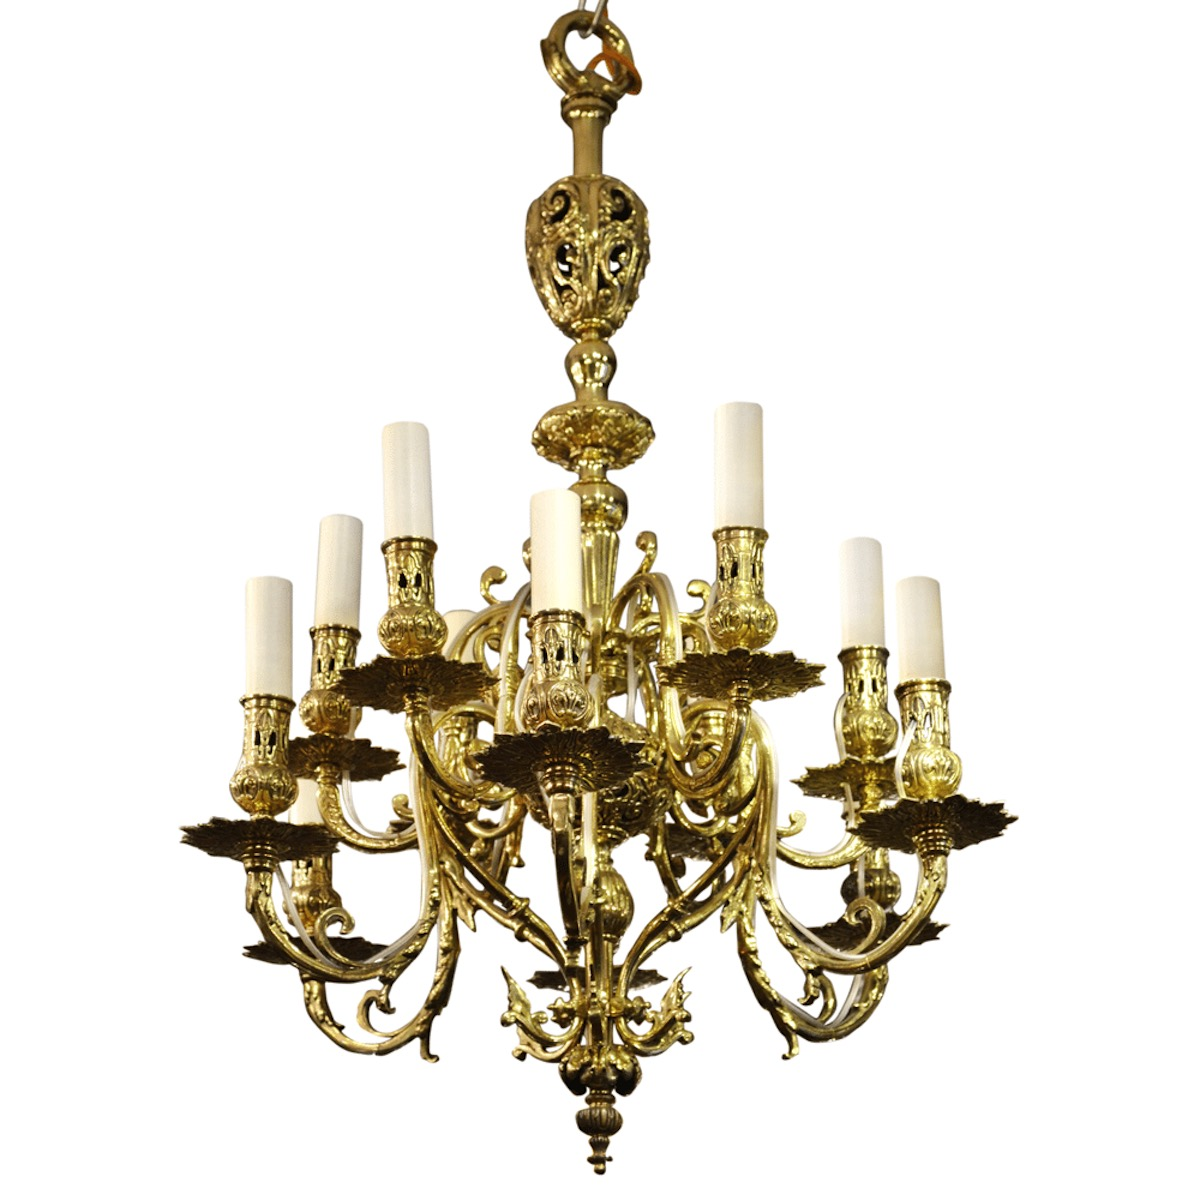 brass-chandelier.jpg